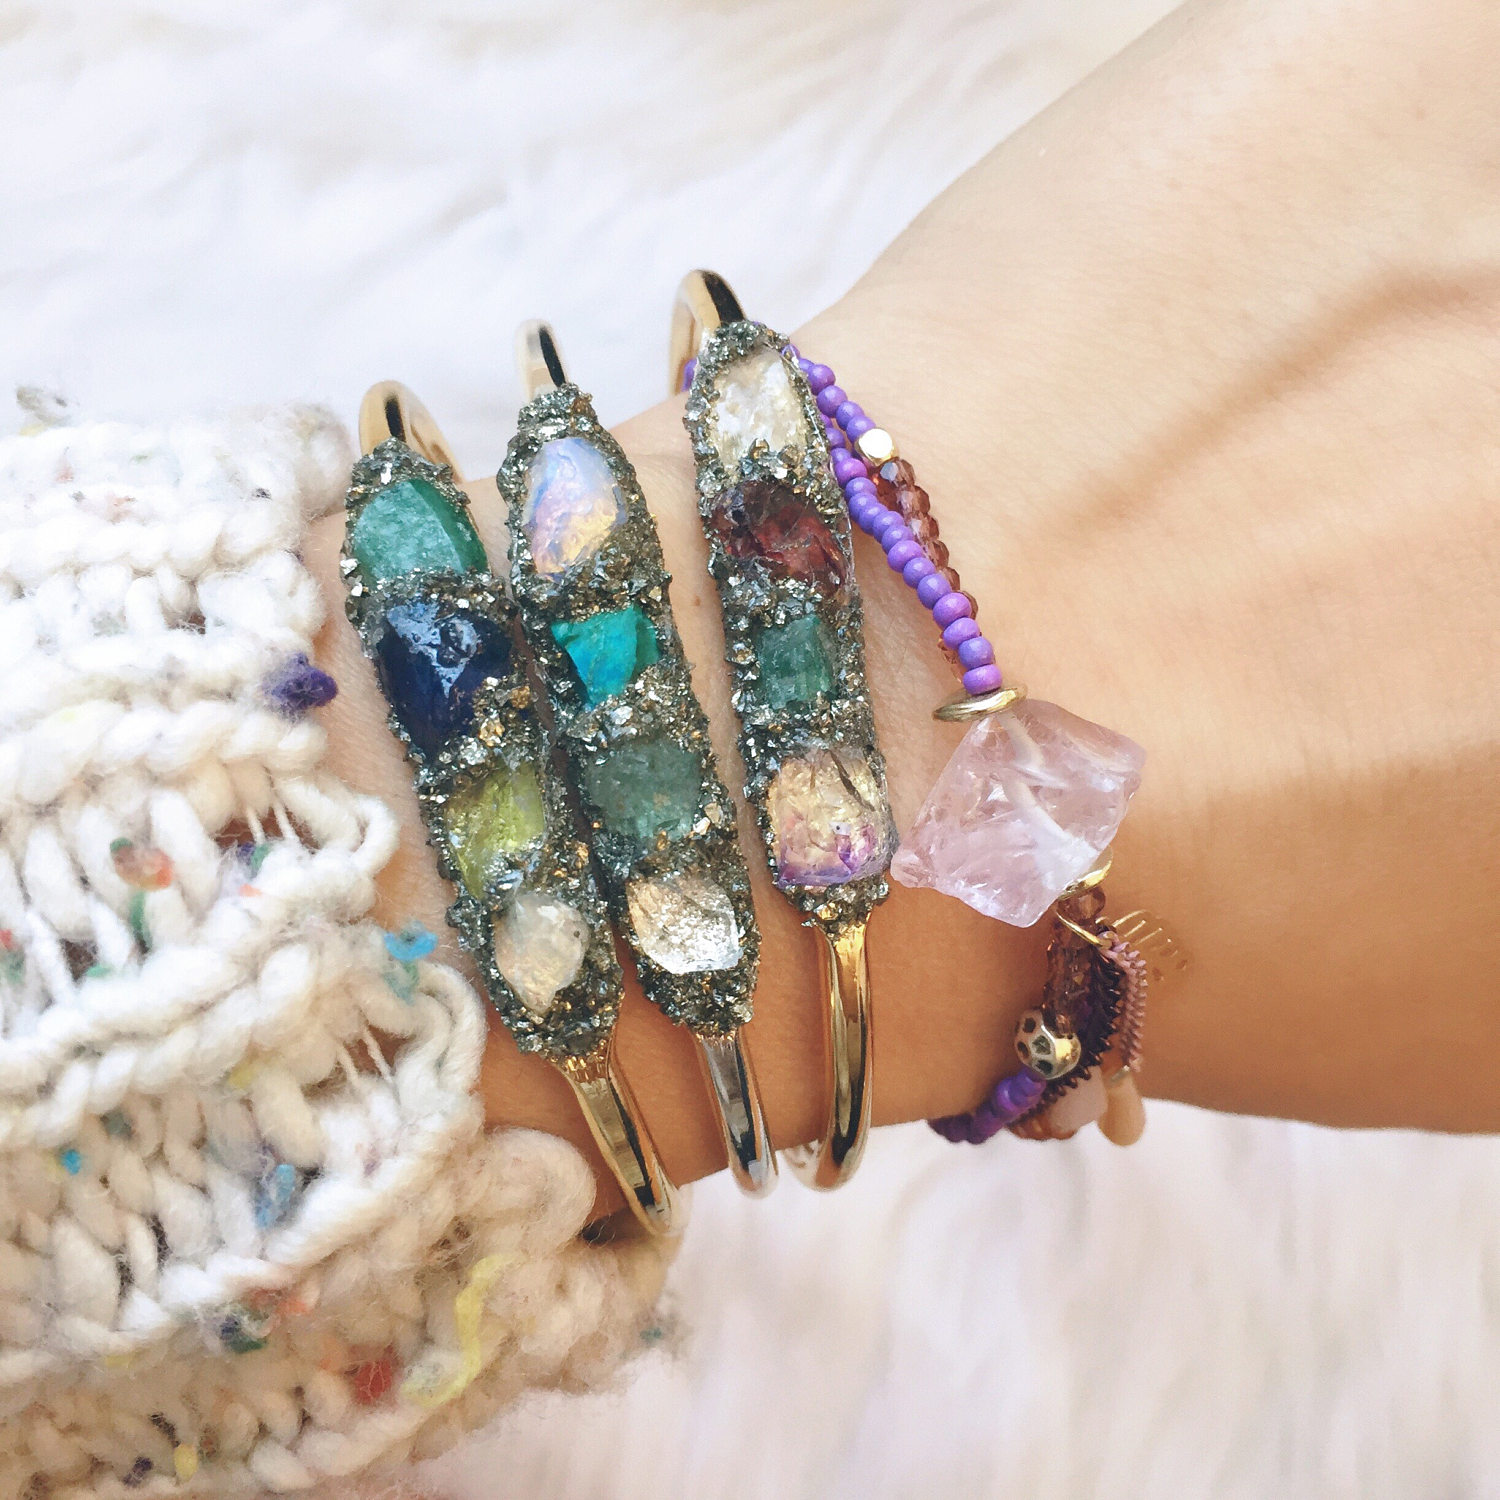 lea spirit gemstone bracelets pop shop america blog